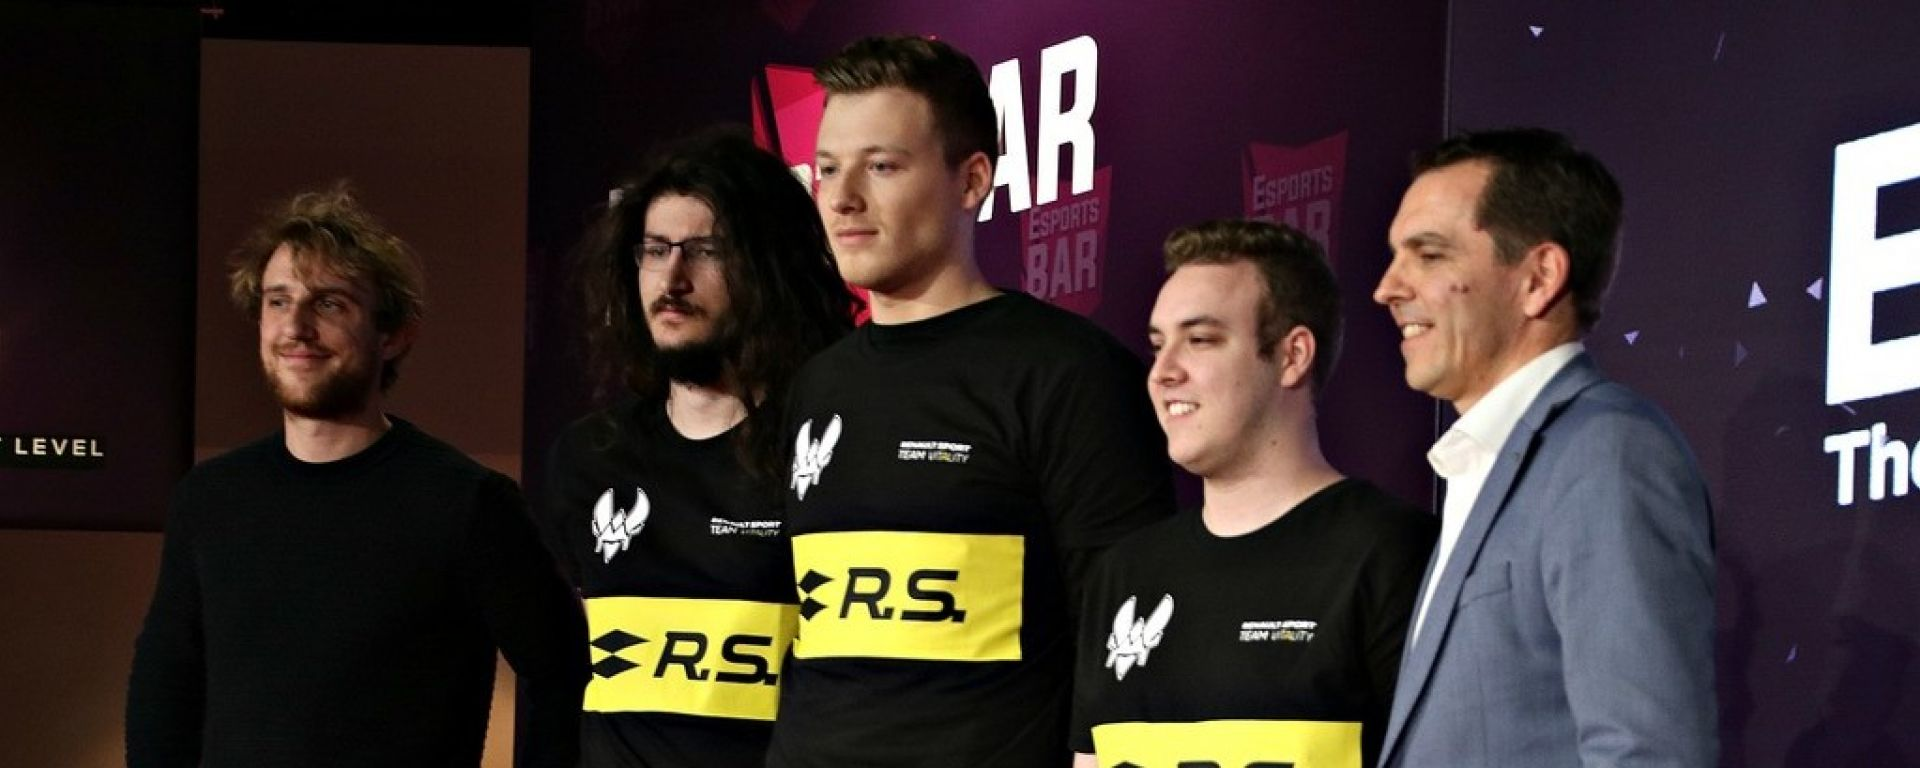 Renault Racing negli eSport con Rocket League